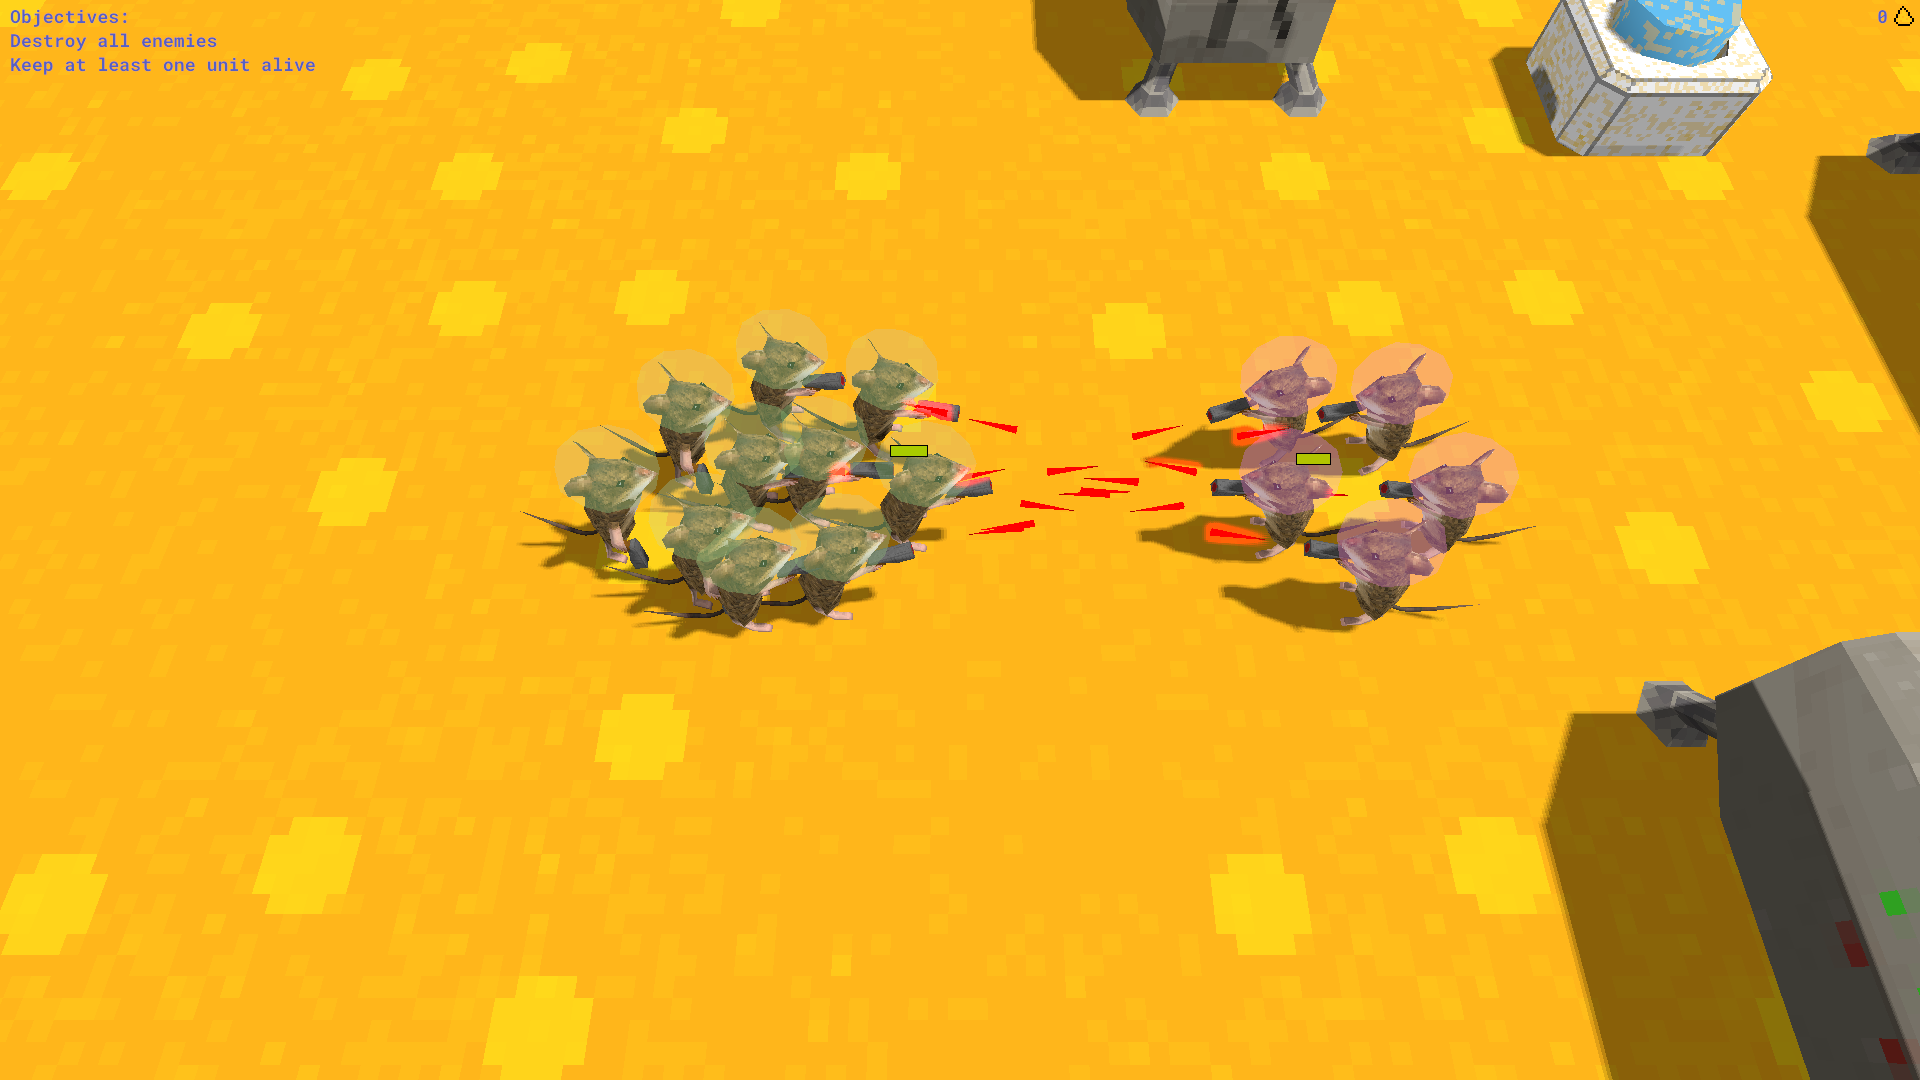 A screenshot of some mice shooting other mice